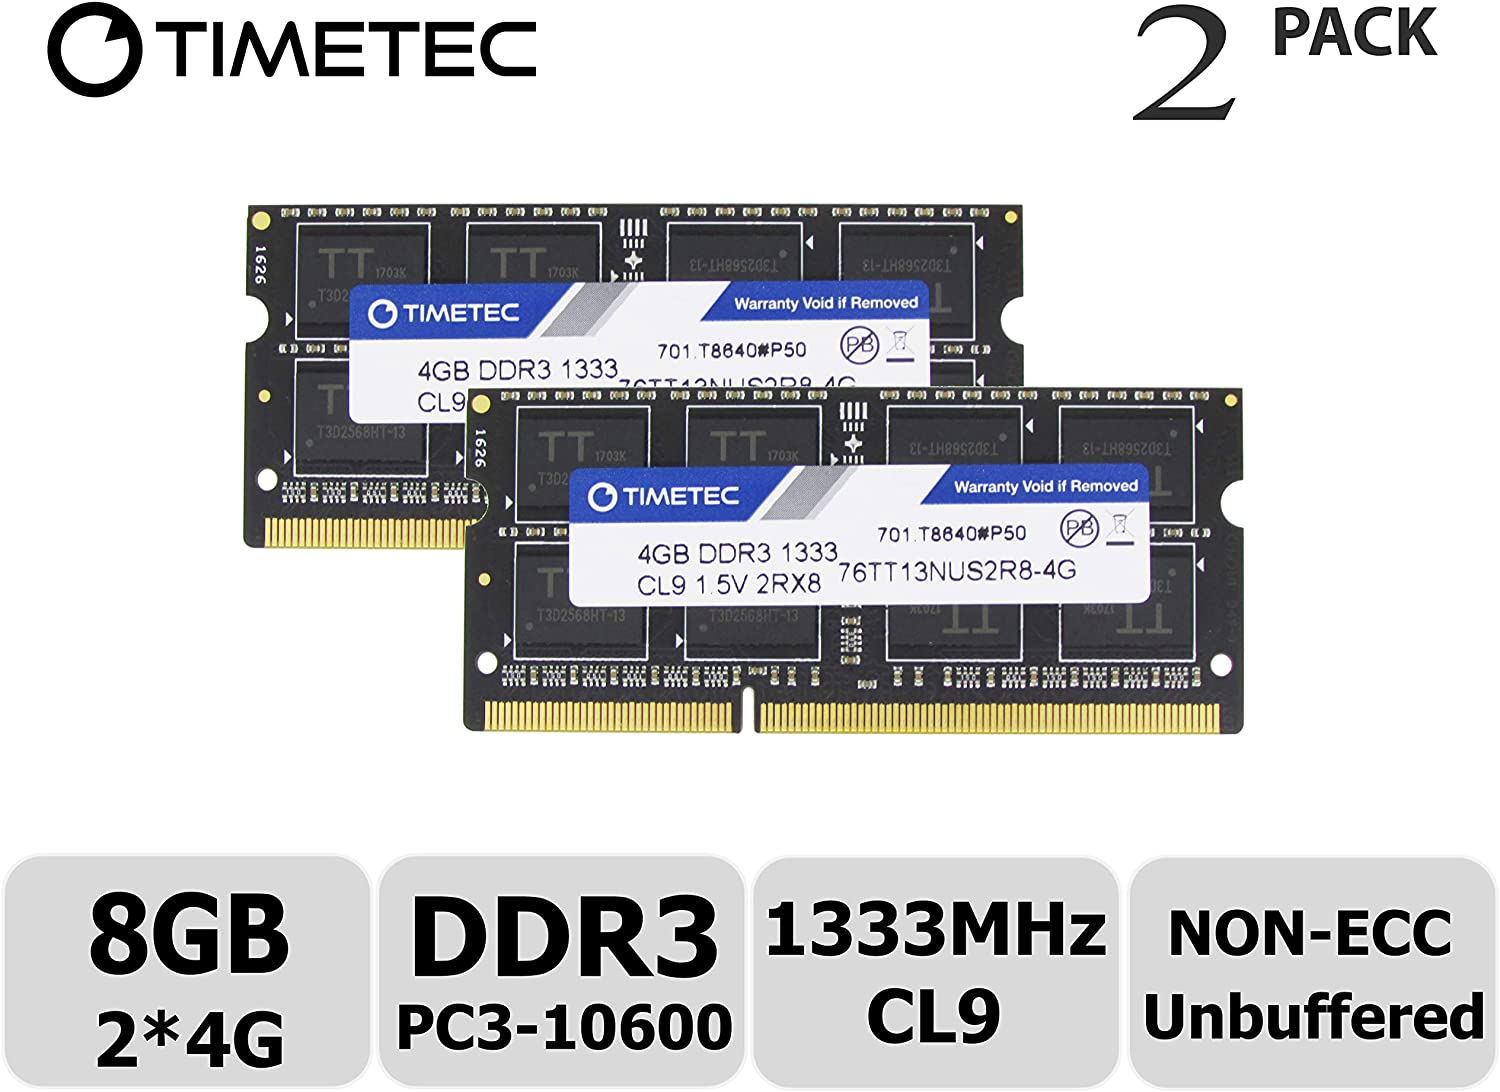 Timetec Hynix IC 8GB KIT (2x4GB) DDR3 1333MHz PC3-10600 Non ECC Unbuffered 1.5V CL9 2Rx8 Dual Rank 204 Pin Sodimm Laptop Notebook Computer Memory Ram Module Upgrade (Low Density 8GB Kit (2x4GB))